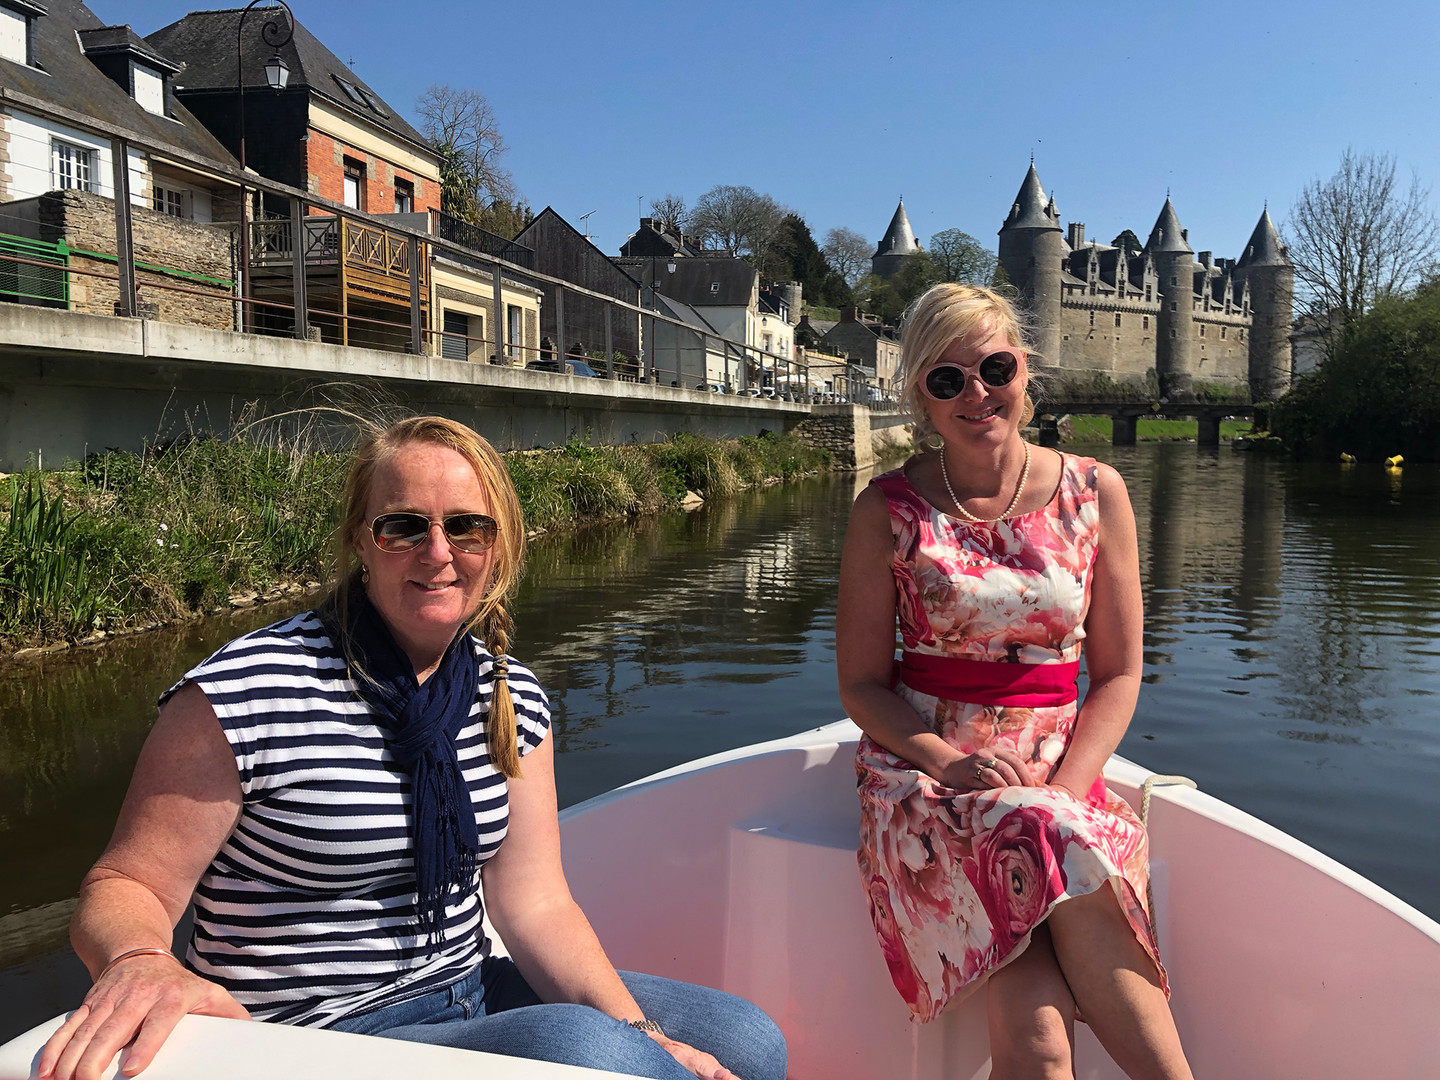 Electric boat hire on canal